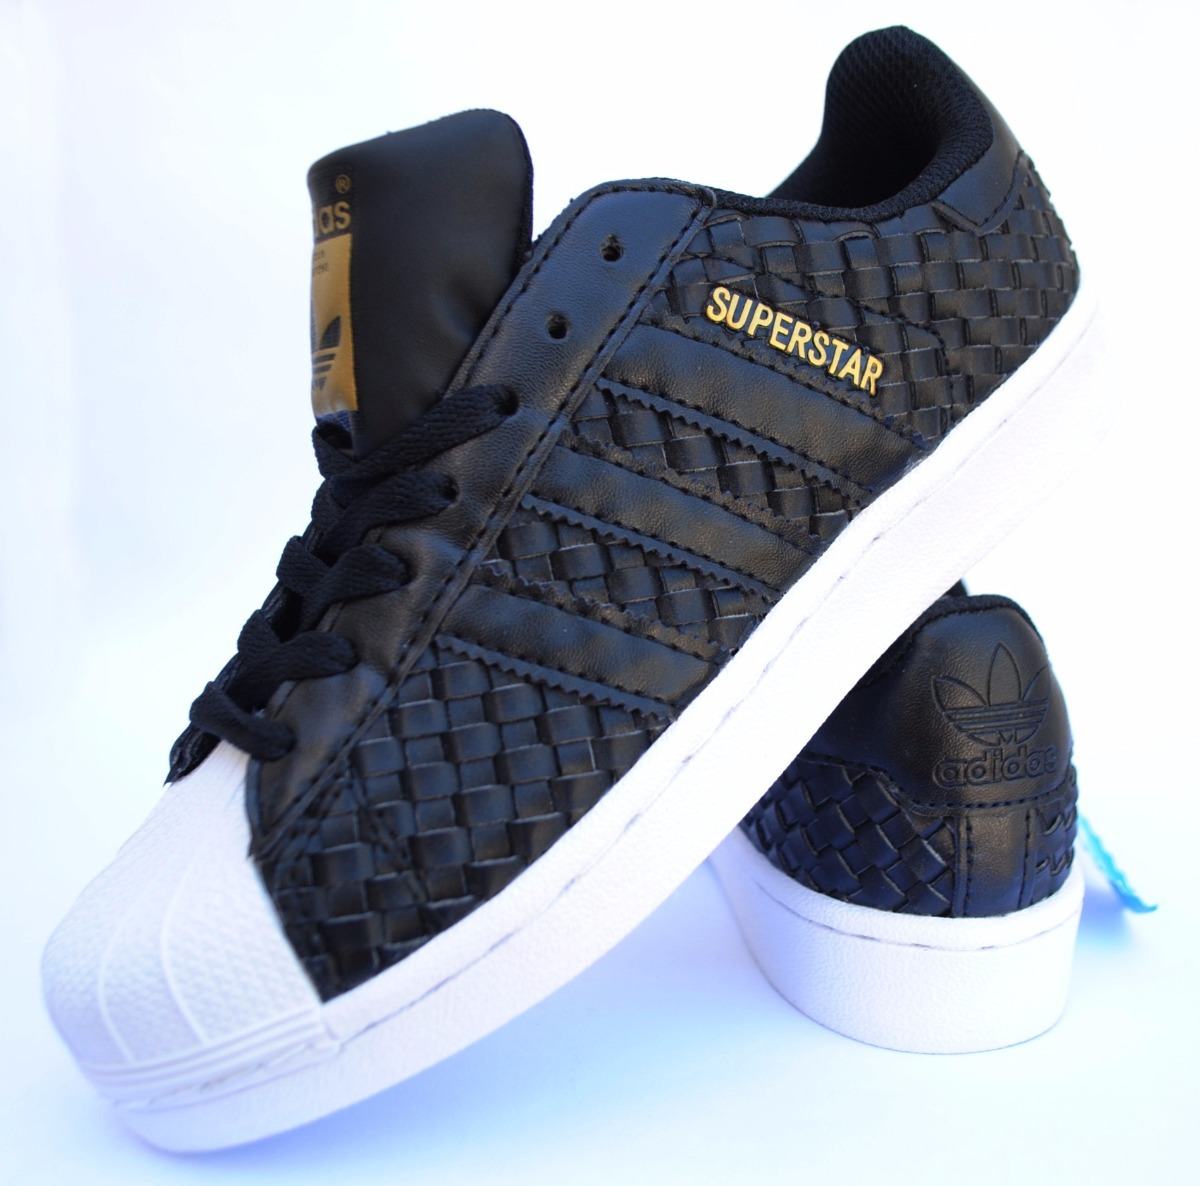 meet bf760 ce88c Zapatillas Superstar Black Gold Woven -   2.499,00 en Mercado Libre